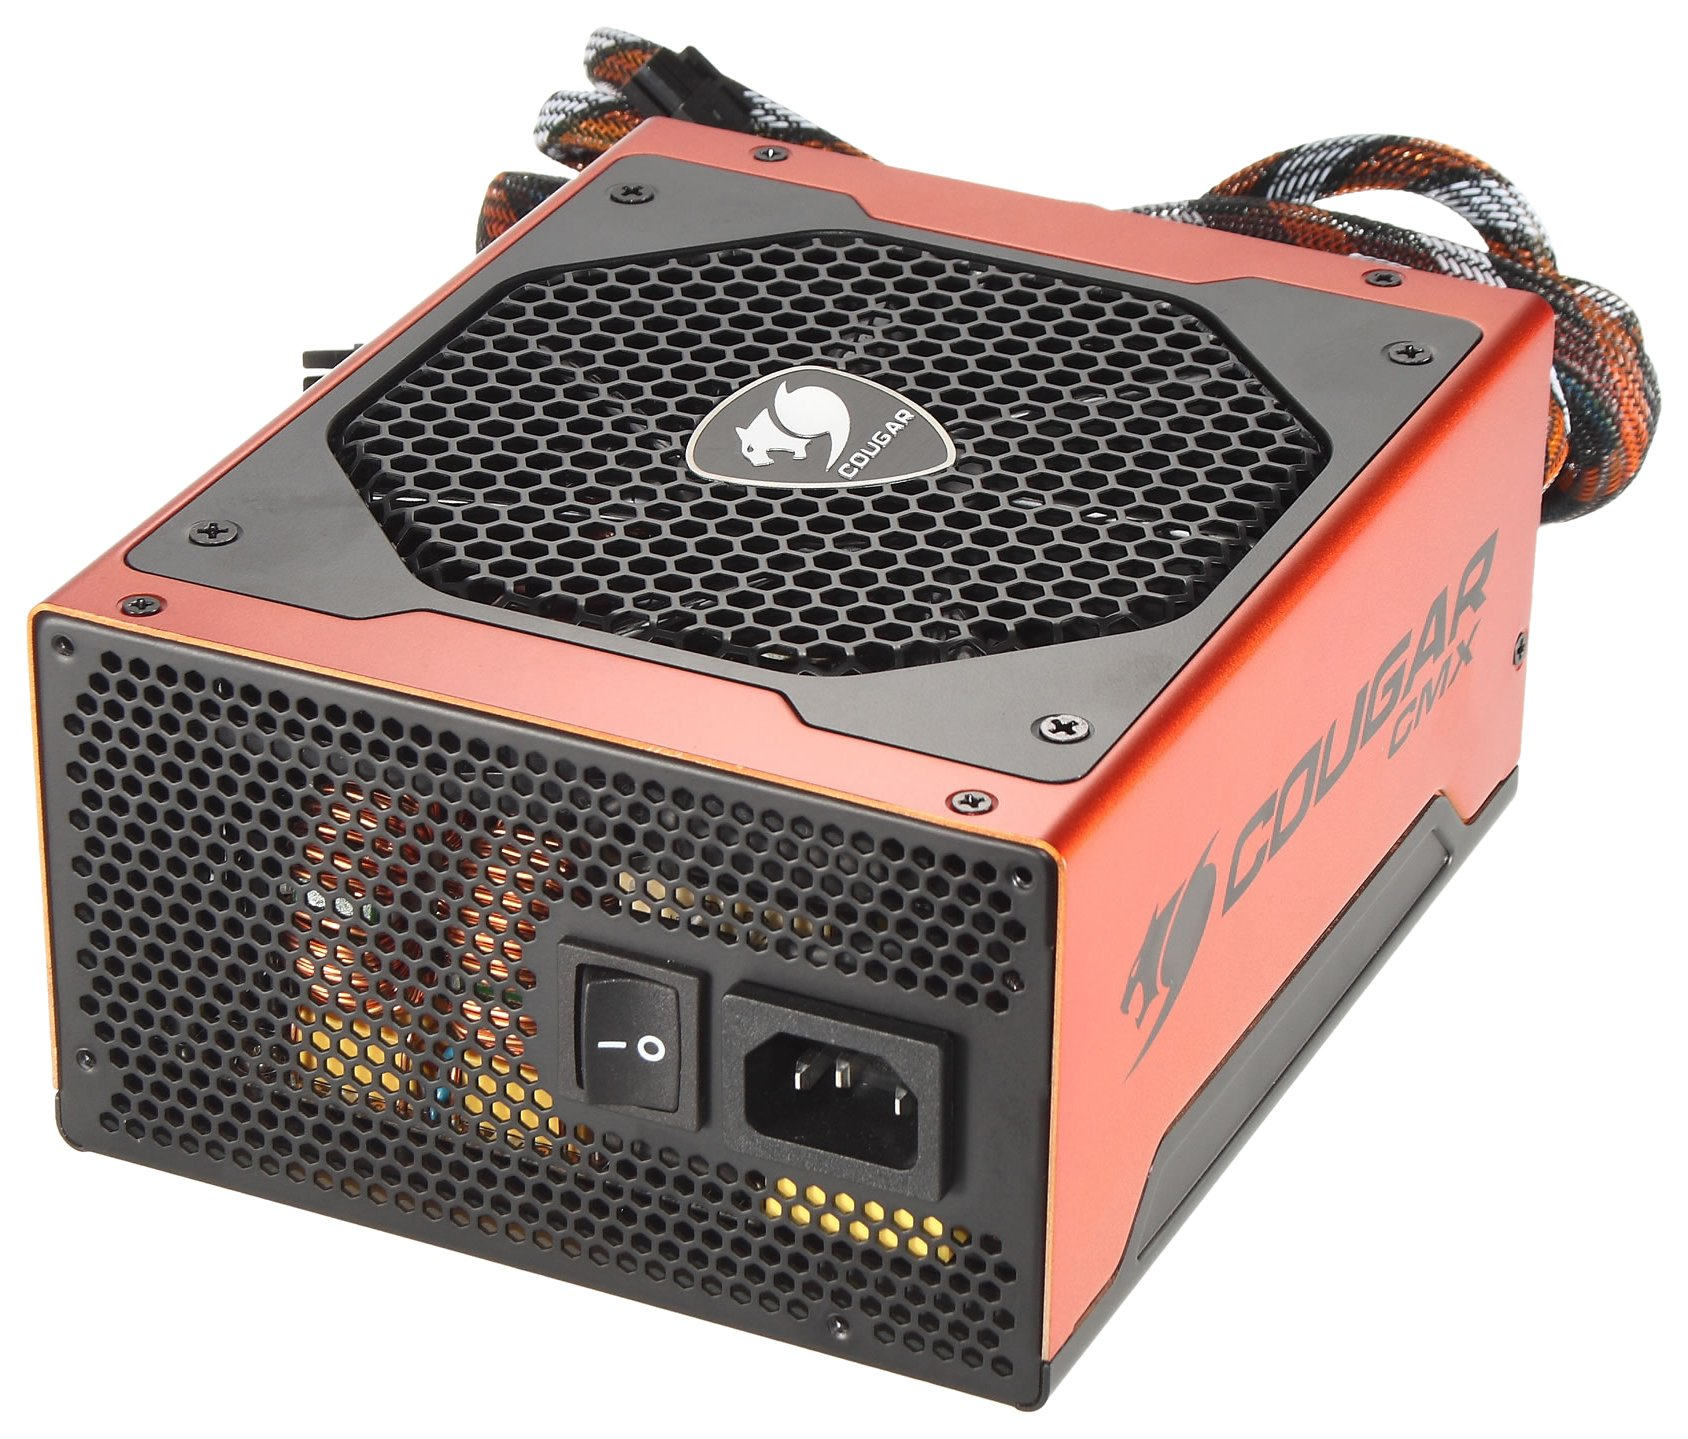 COUGAR CMX1000 / 1000CMX 1000W ATX12V / EPS12V SLI Ready CrossFire Ready 80 PLUS BRONZE Certified flexible cable management Active PFC Power Supply by Cougar (Image #1)